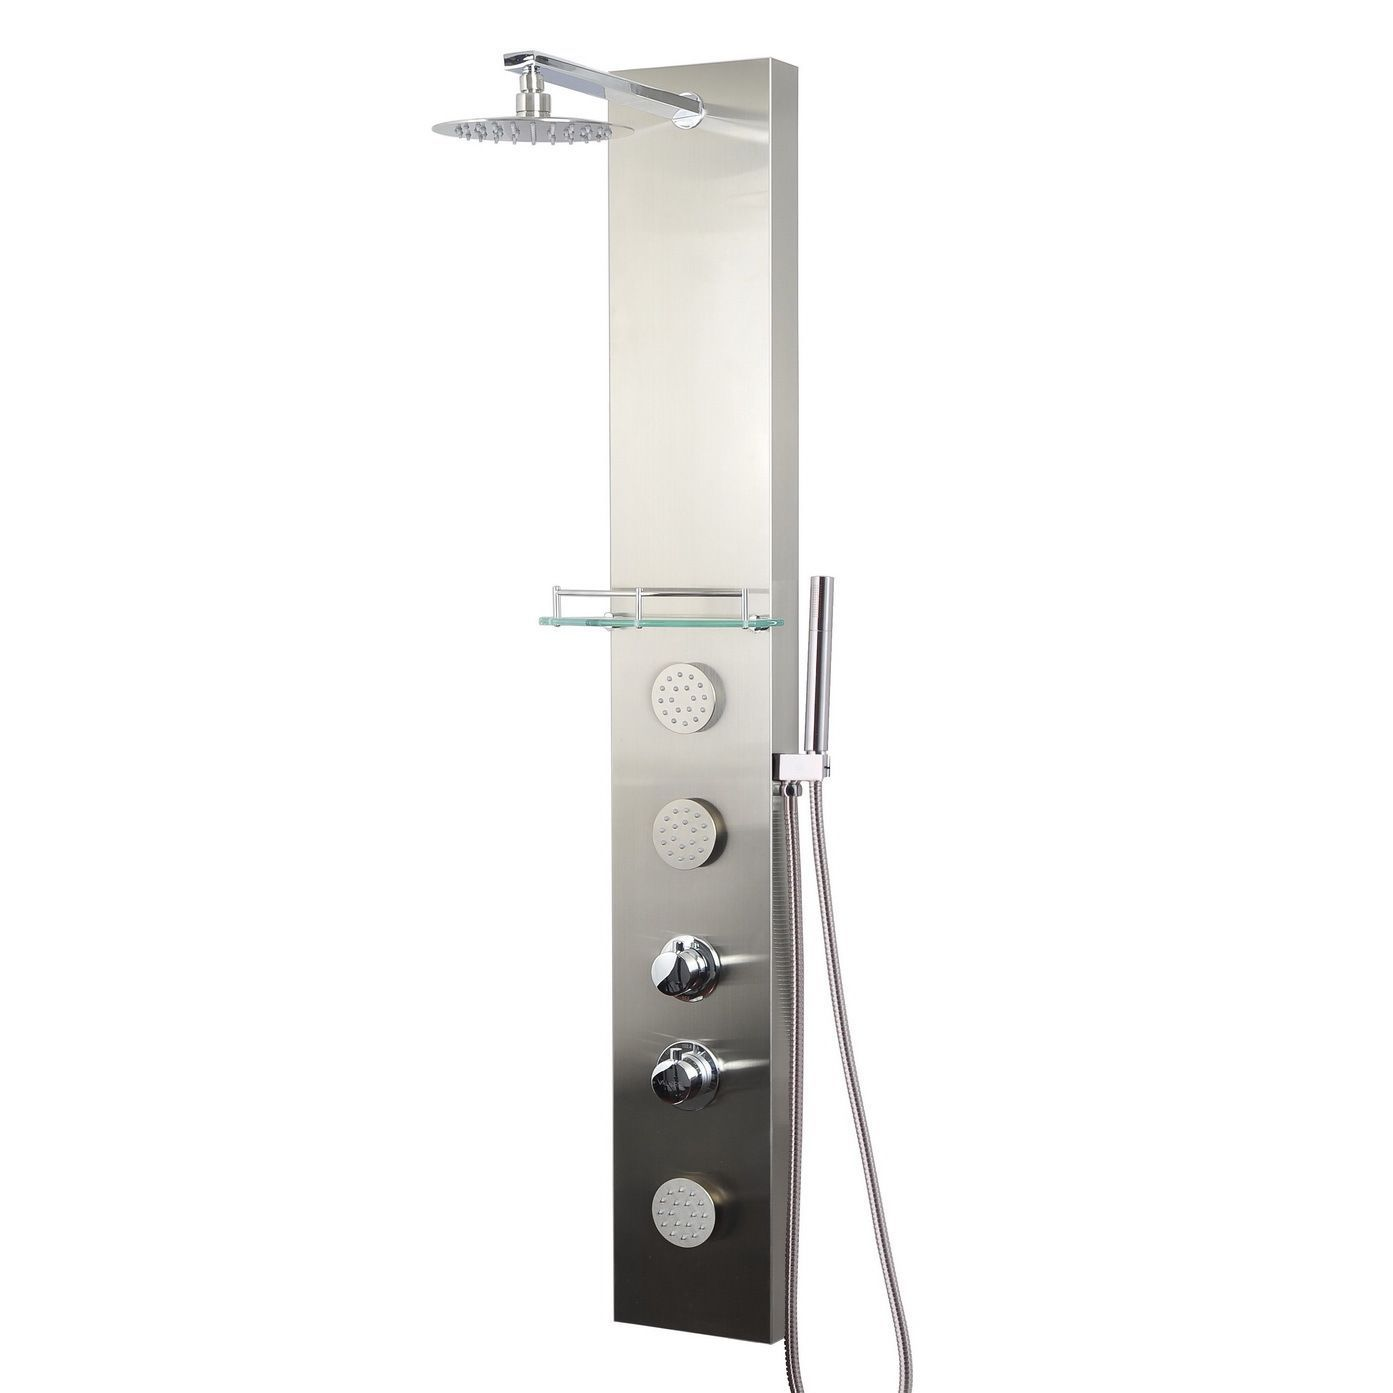 Valore Stainless Steel Full-install Shower Panel | Shower Panels ...